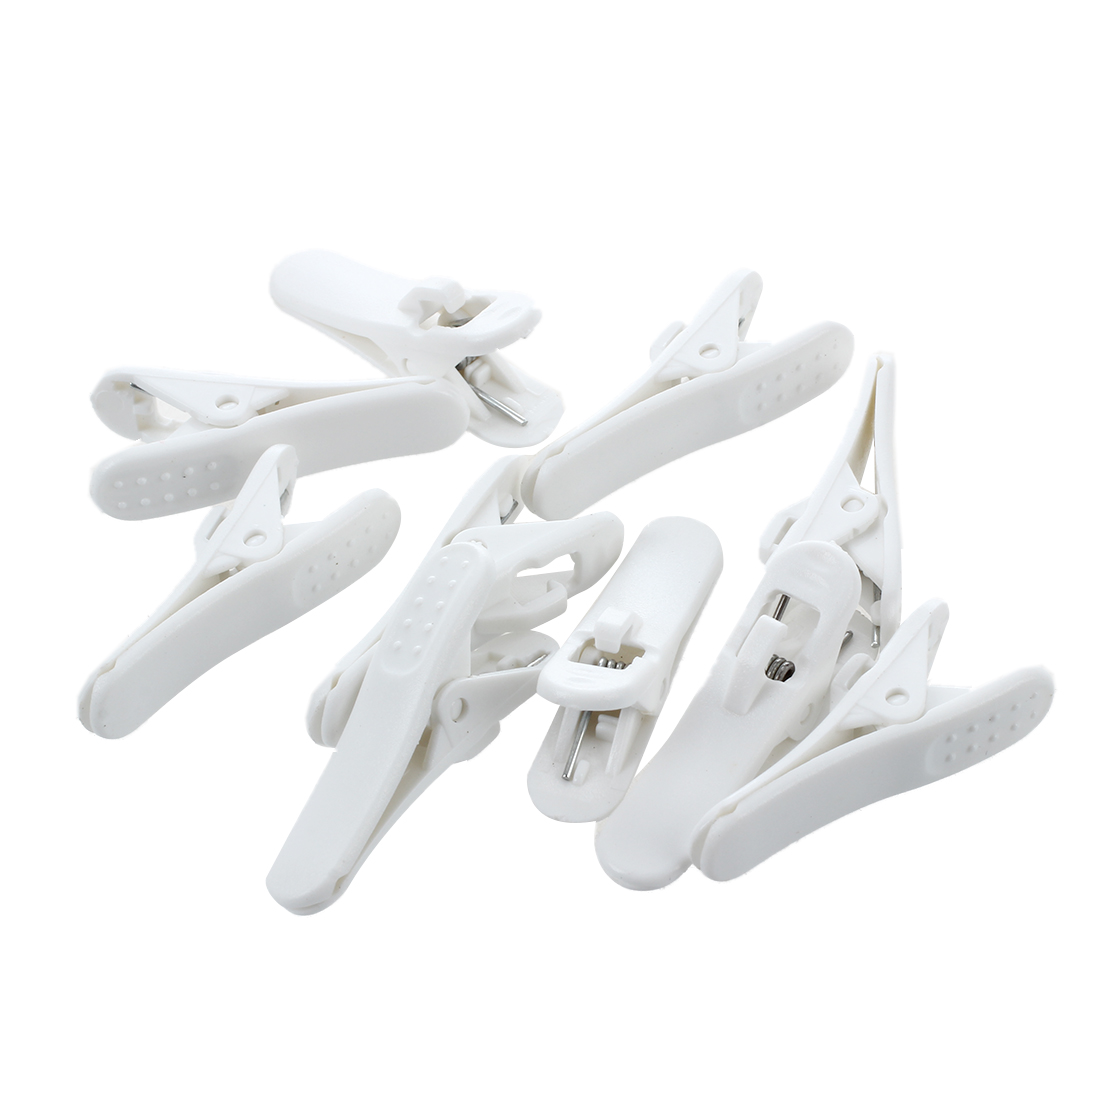 White Plastic Headphone Earphone Cable Wire Clip Nip Holder 10 Pcs